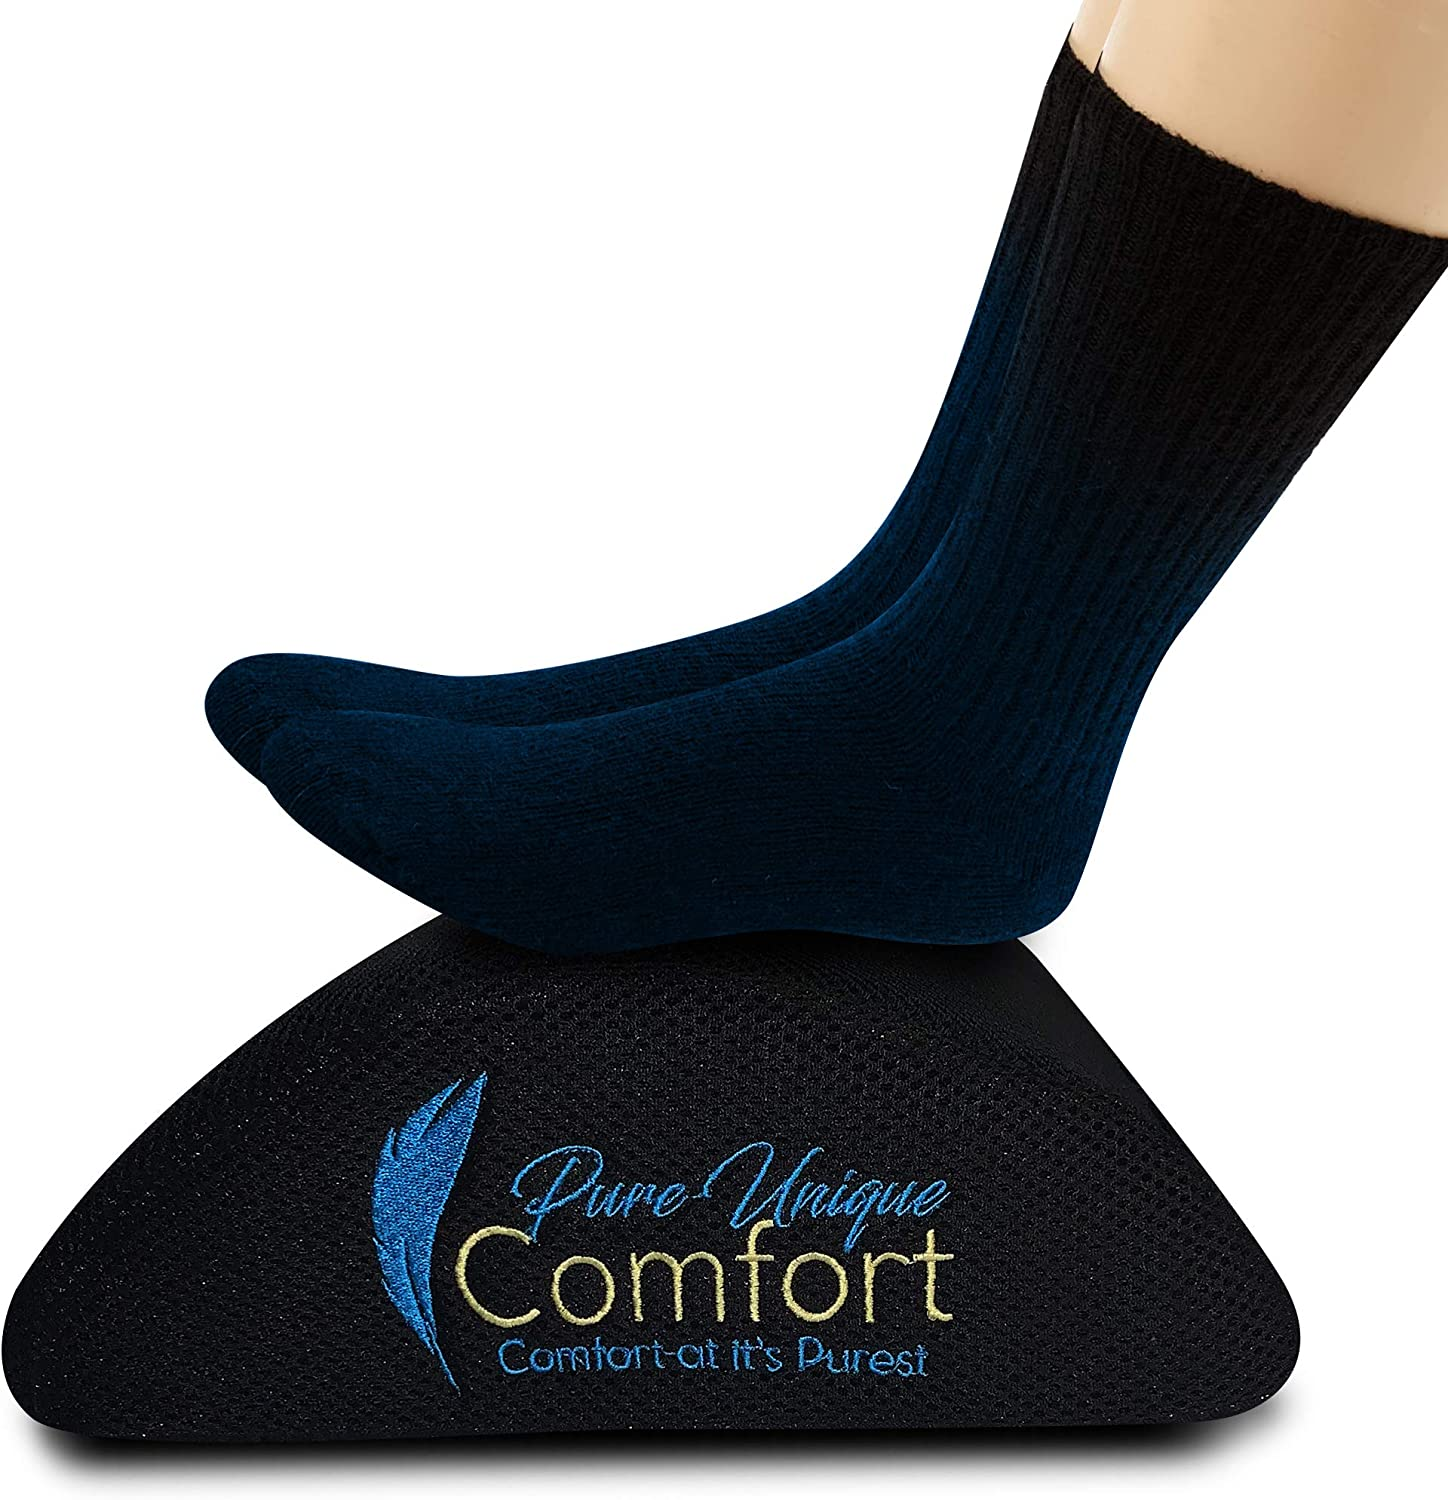 Foot Rest for Under Desk, Pillow Cushion Non-Slip Bottom, Memory Foam, 3D Mesh Ergonomic Foot Stool Rocker, for Home, Office, and Travel, Footrest with Carry Handle by Pure Unique Comfort